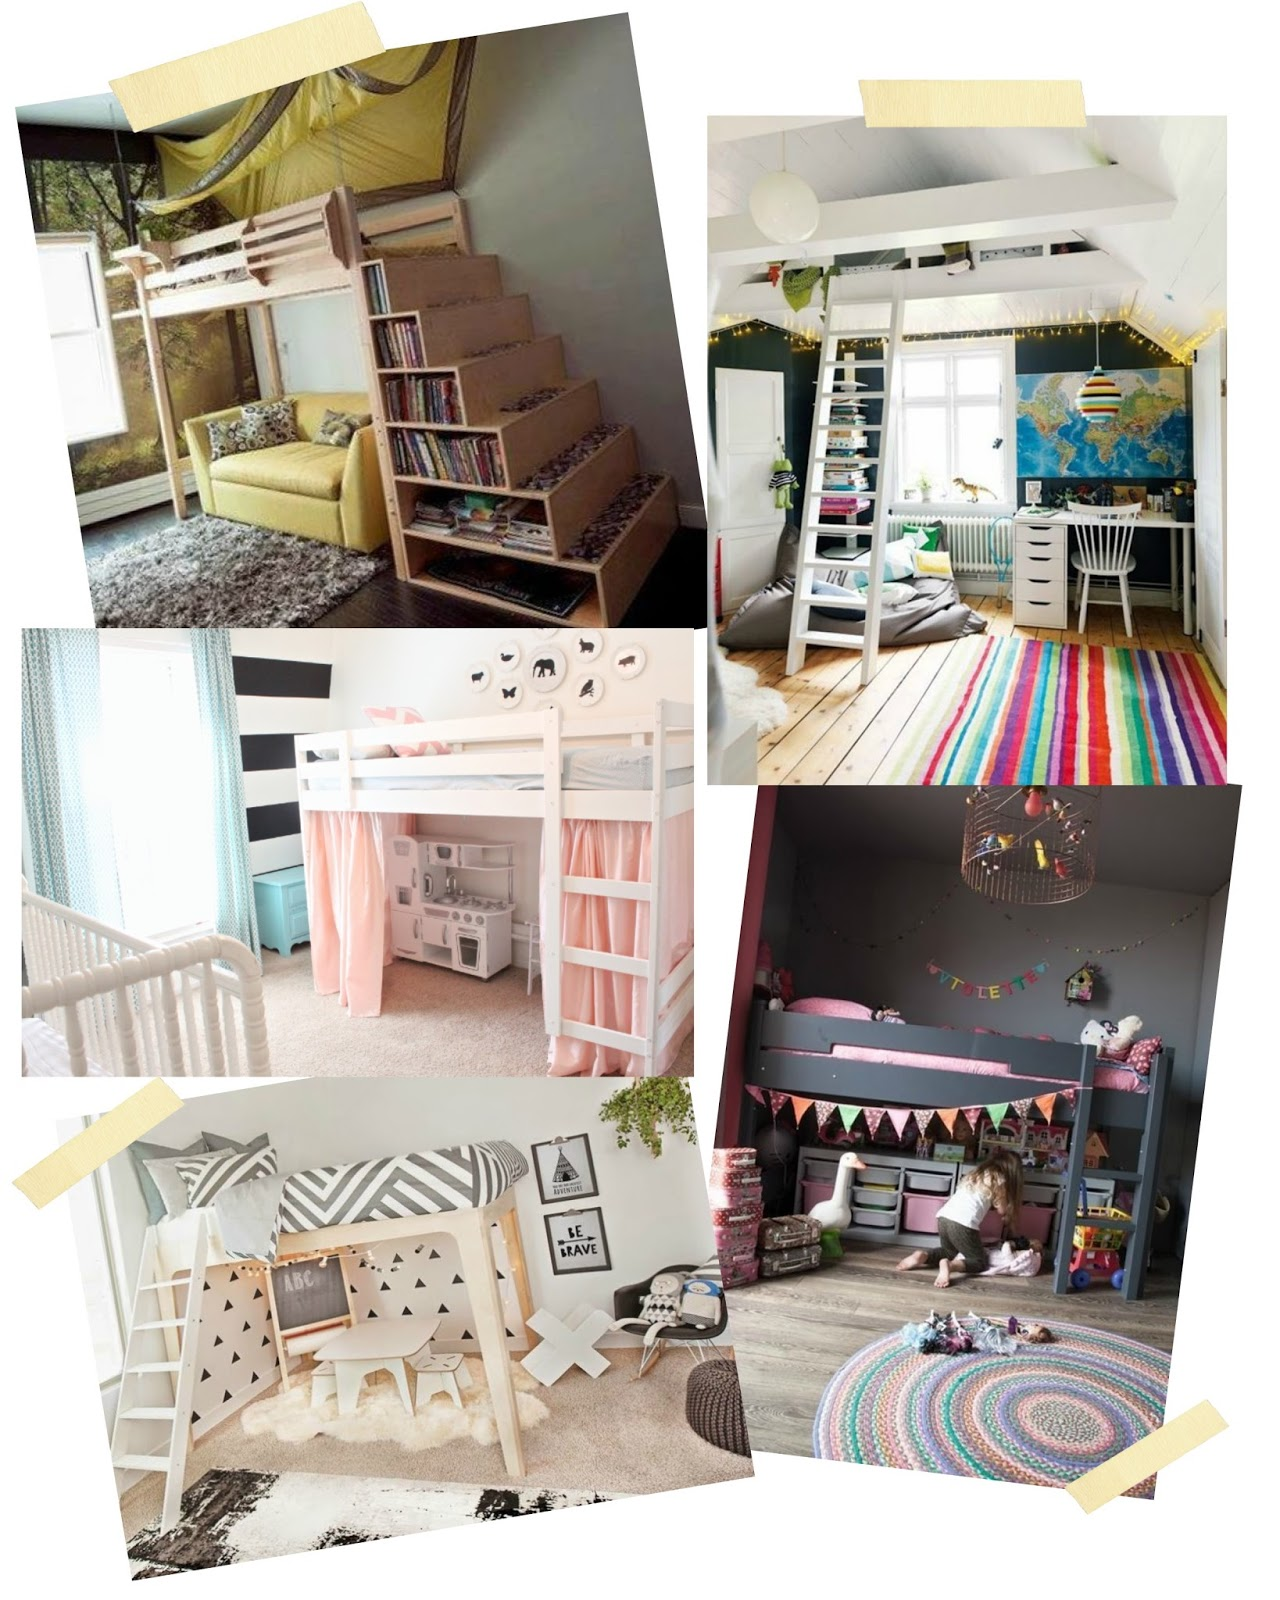 mamasVIB  | V. I. BEDROOM: How to create a loft style kids bed with Ollie & Leila, bedrooms for kids, ollie and leila, loft beds, pinterest, play space, sleepovers for kids, bed in a bag, kids sofa beds, more space in kids rooms, storage ideas for kids bedrooms, mamasvib, stylist, blogger